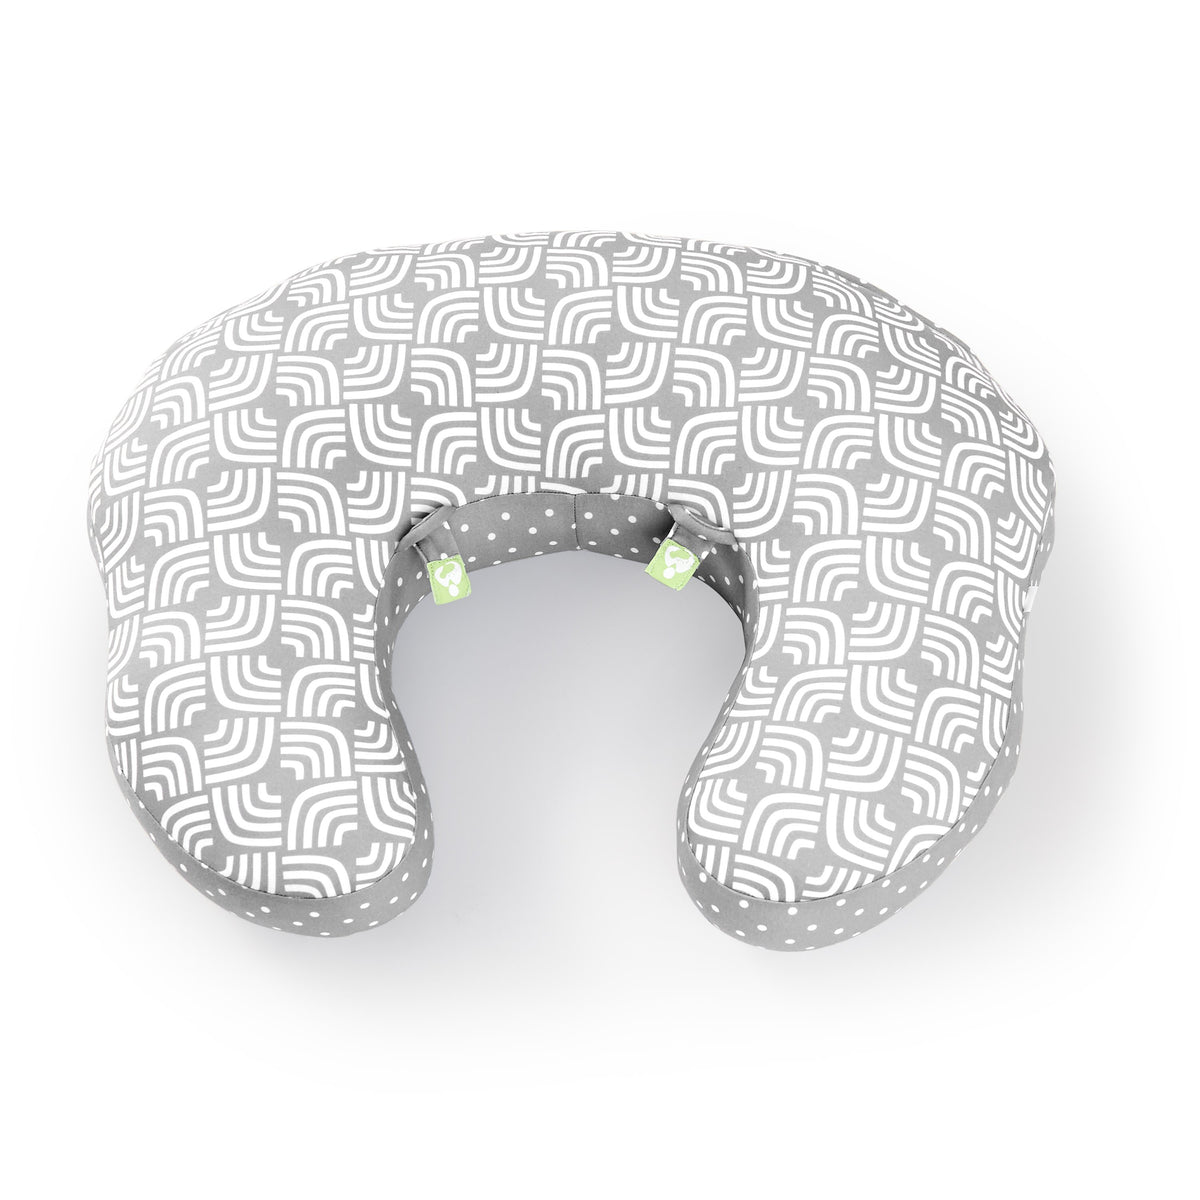 Ingenuity BS11818 Plenti Nursing Pillow Set - Moon Crest - includes Pillow & Cover